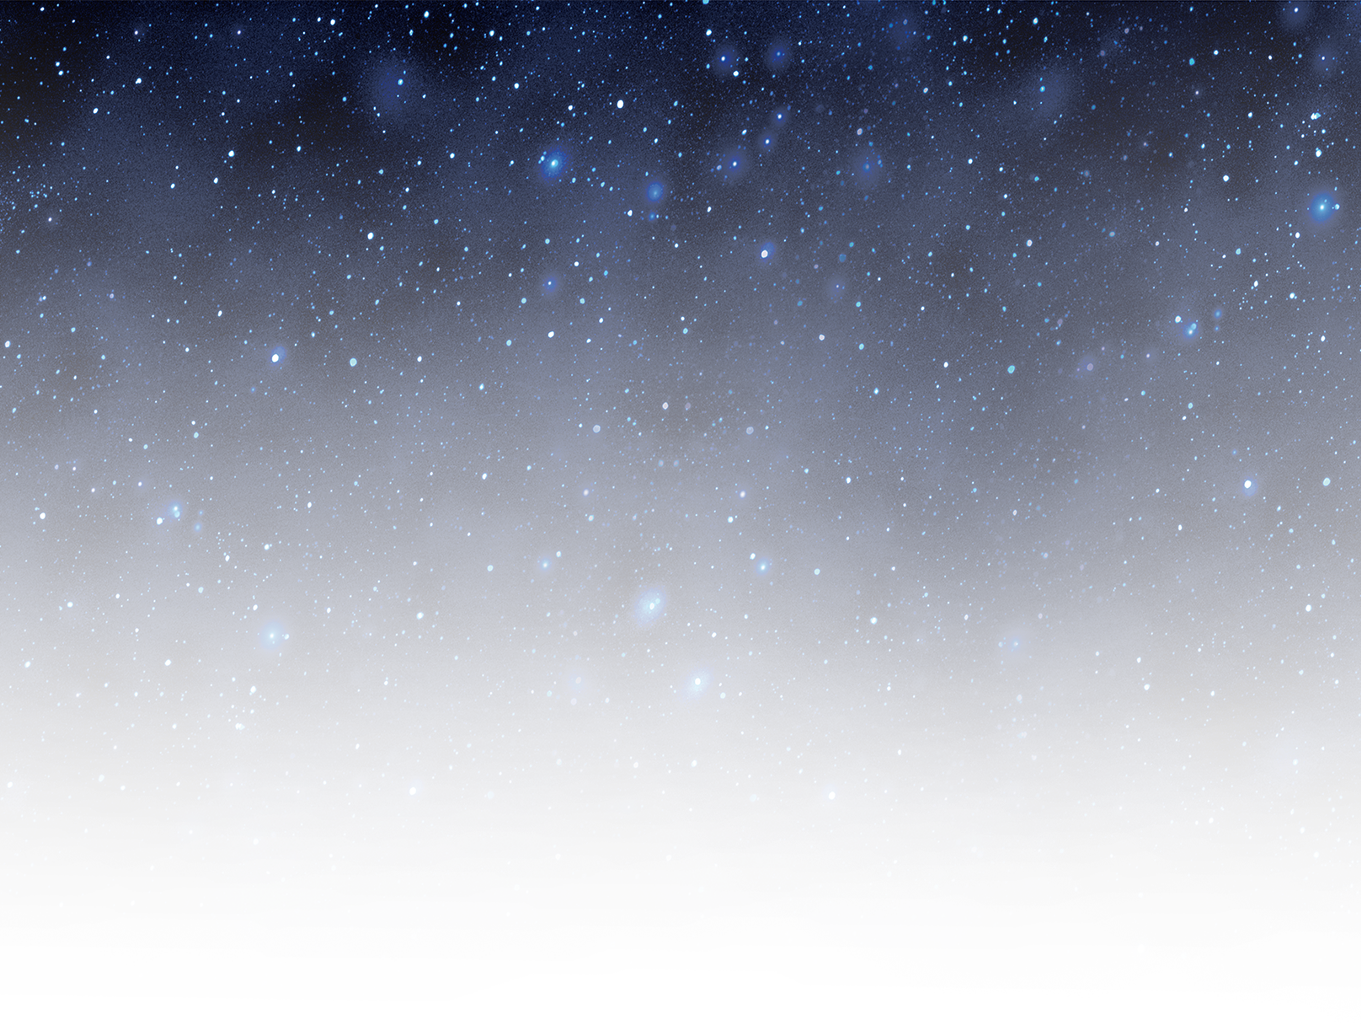 Starry sky png. Stars night freetoedit report